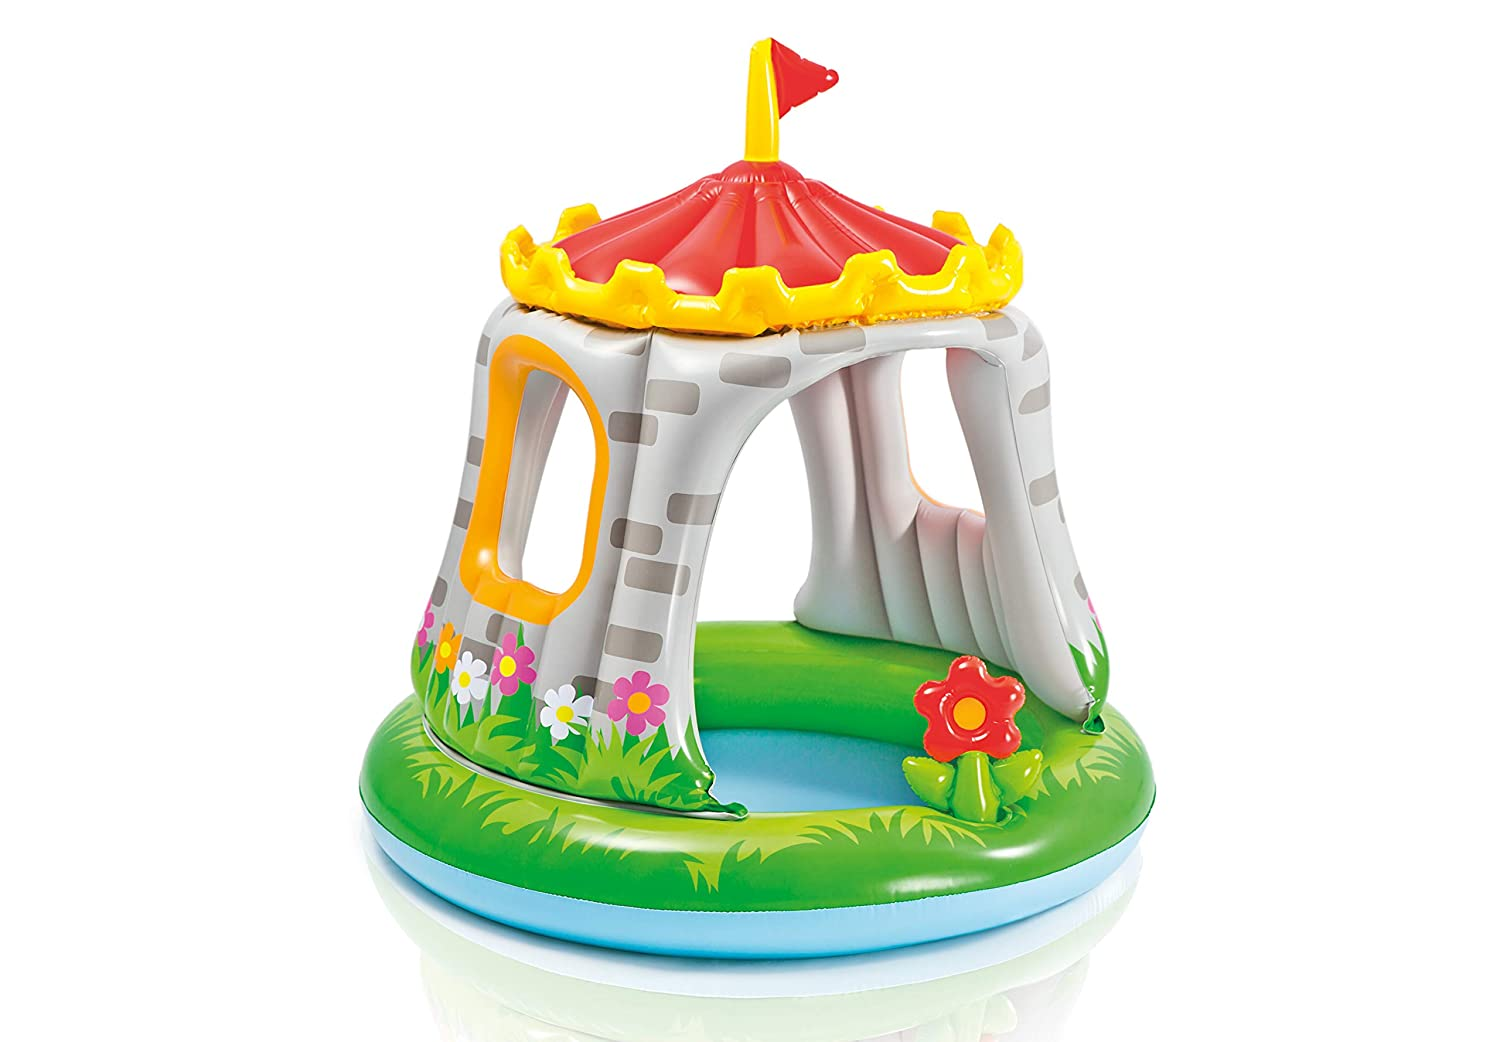 Intex 57122NP - Piscina hinchable castillo & flor 122 x 122 cm 74 ...